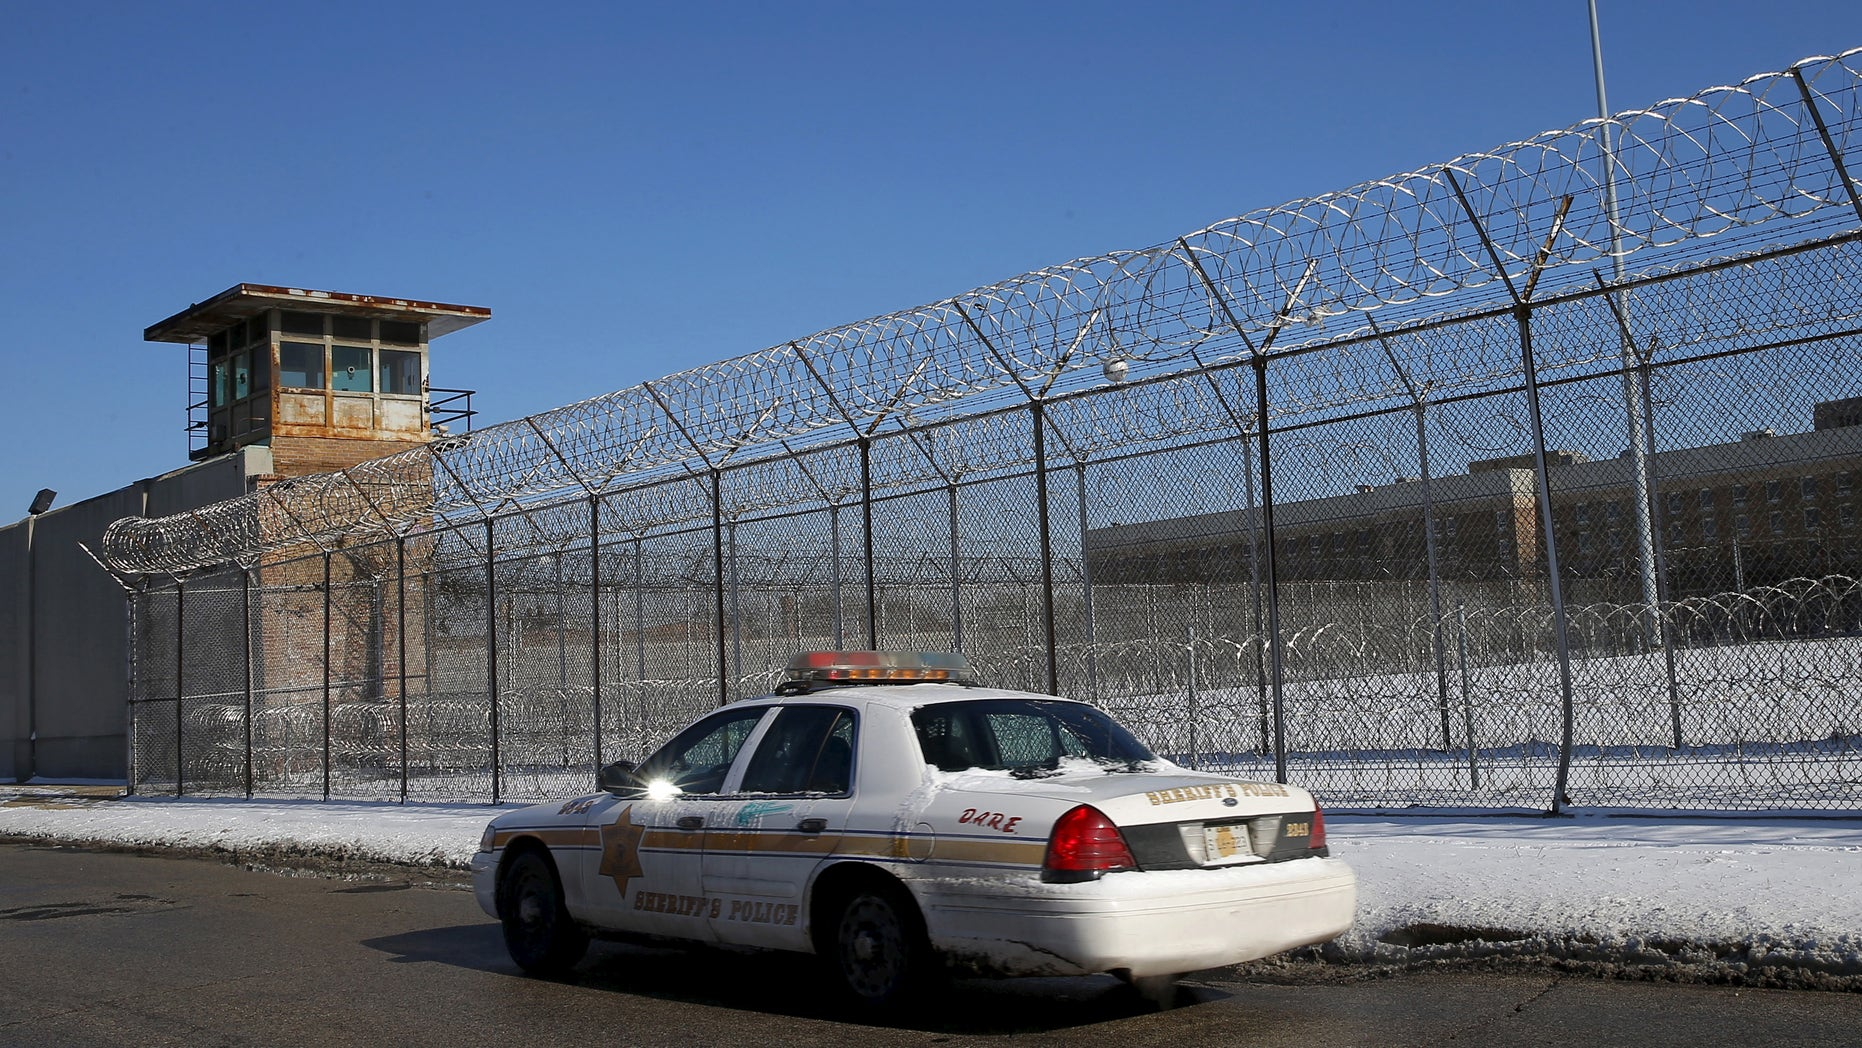 The Cook County Jail in Chicago.